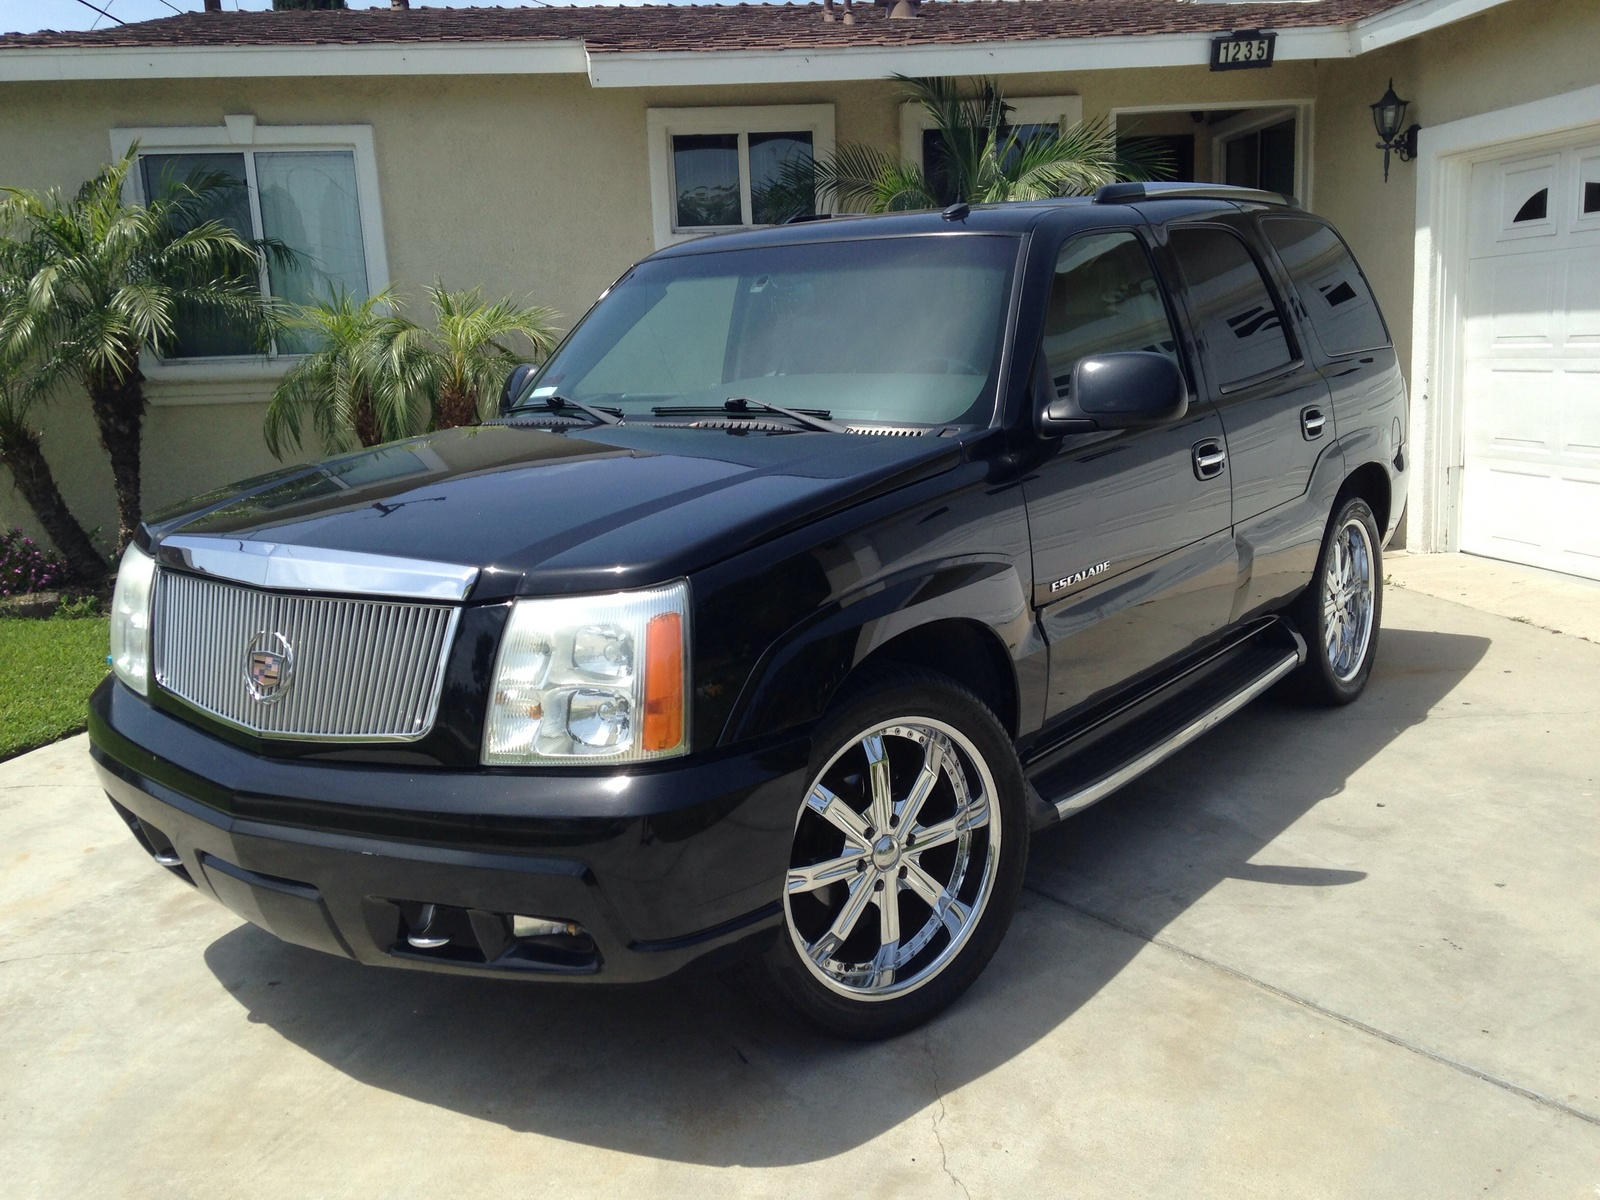 Cadillac Escalade 6.0i 2002 photo - 1